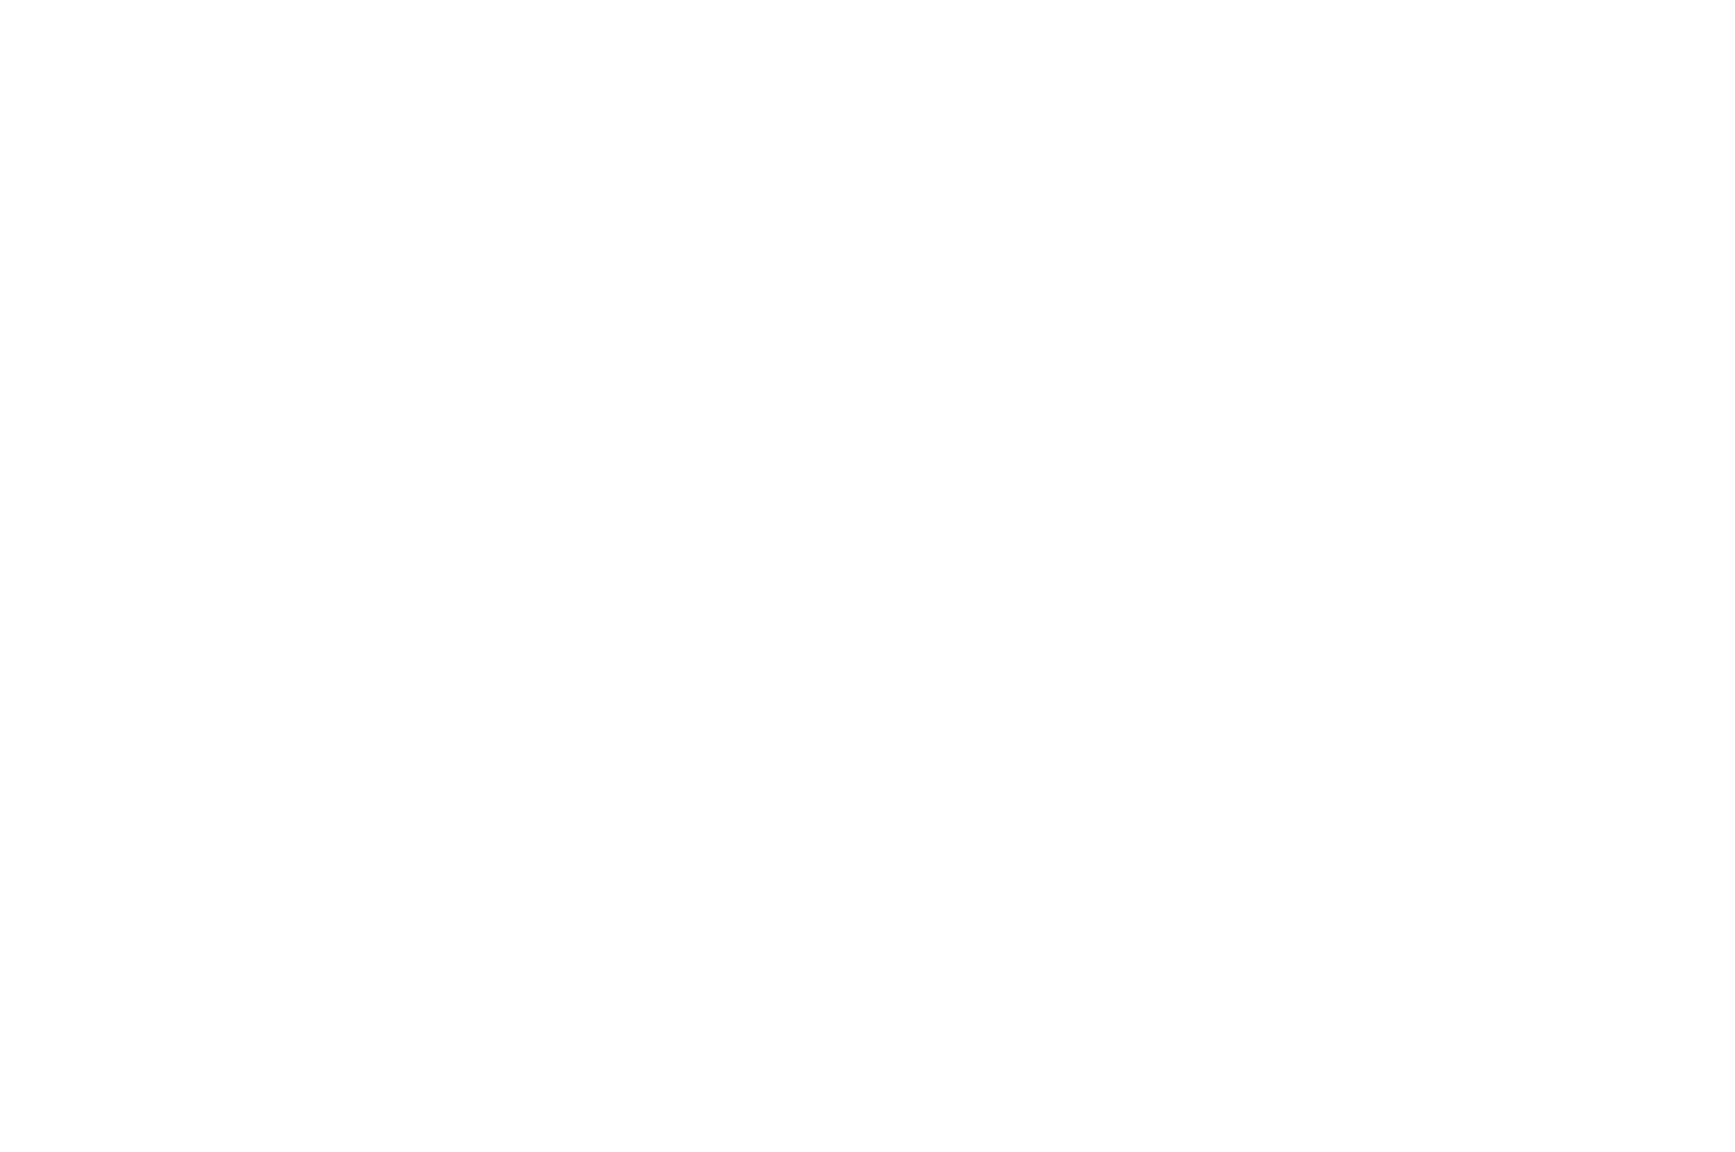 OFFICIAL SELECTION - La danza in 1 minuto - 2019-2.png